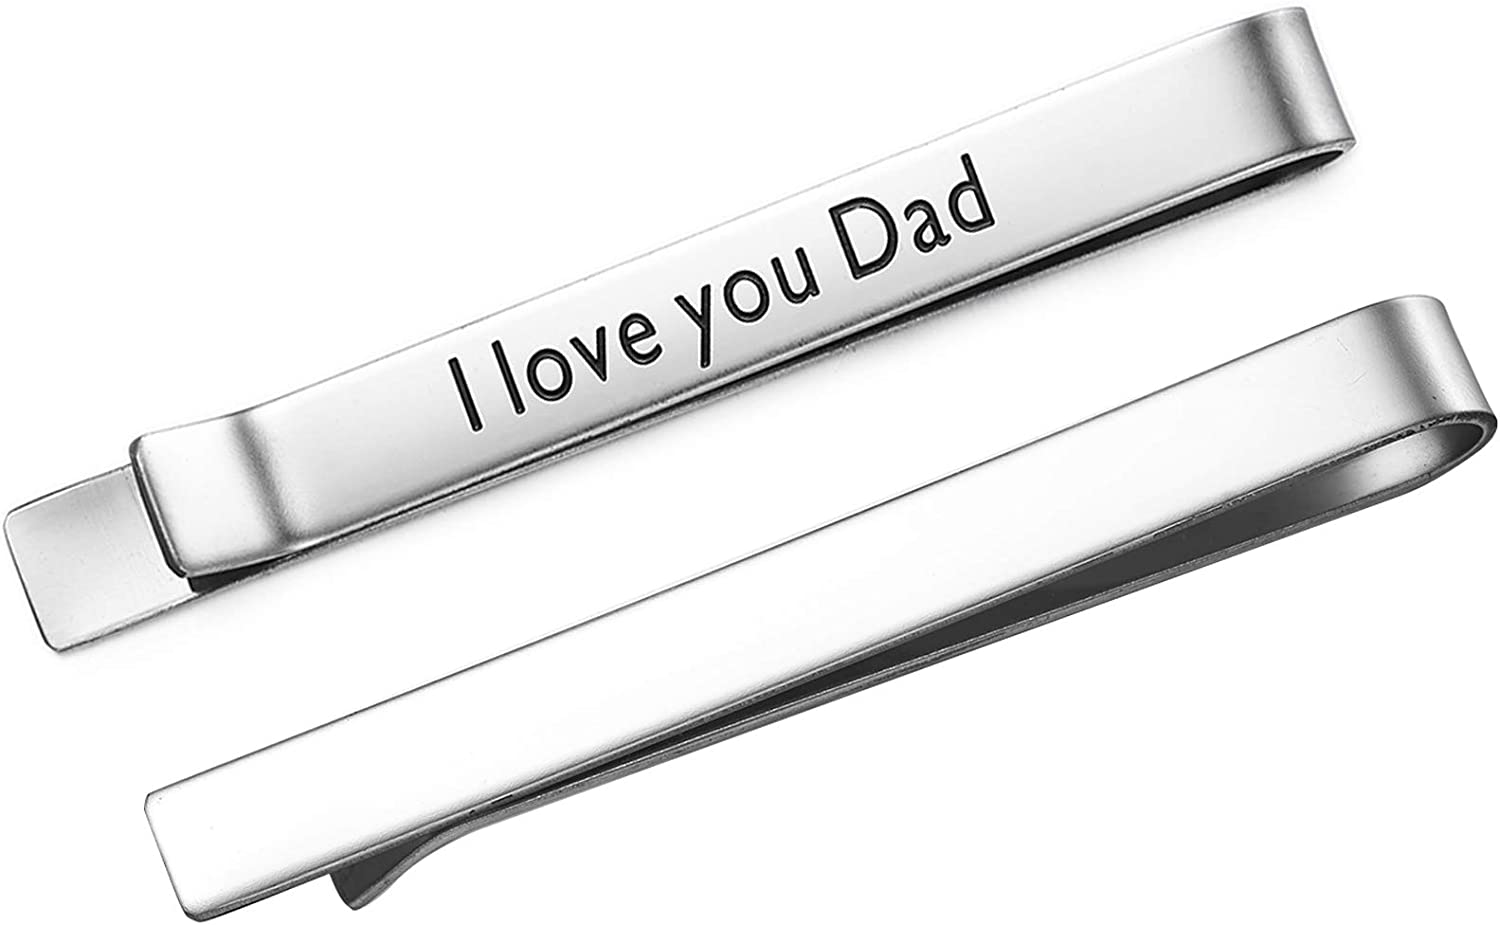 Melix Beautiful Dad Tie Clip, Personalized Tie Clips for Men, for Daddy Grandpa Husband, Custom Message from The Kids